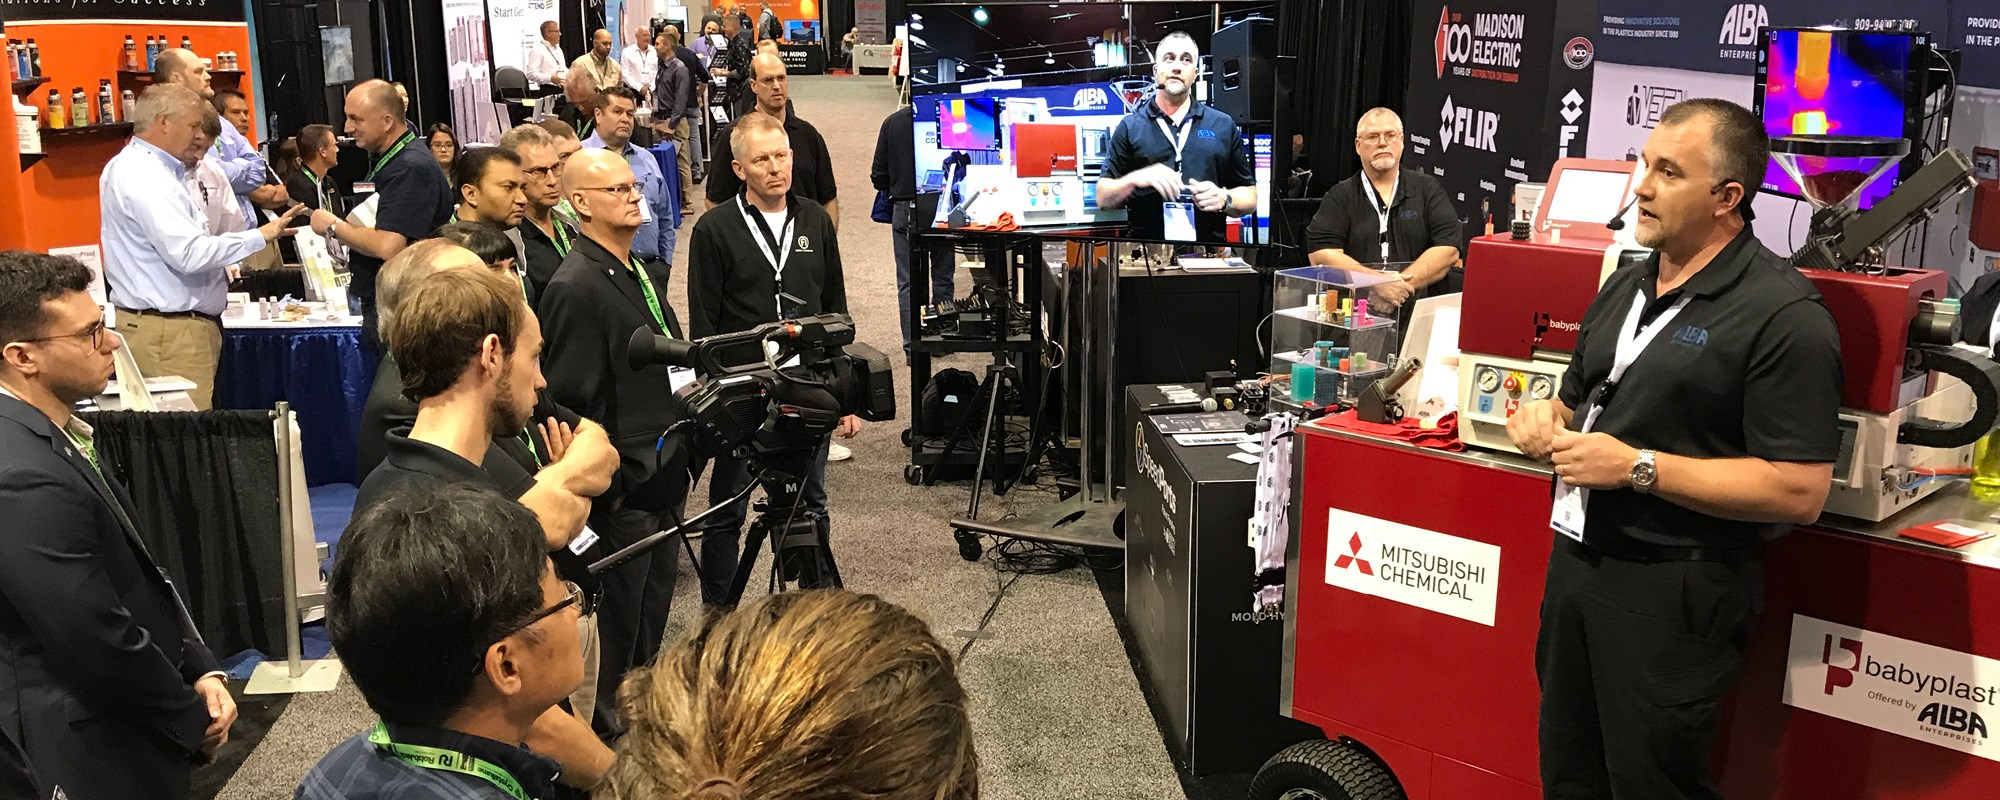 Attendees on the Amerimold show floor.